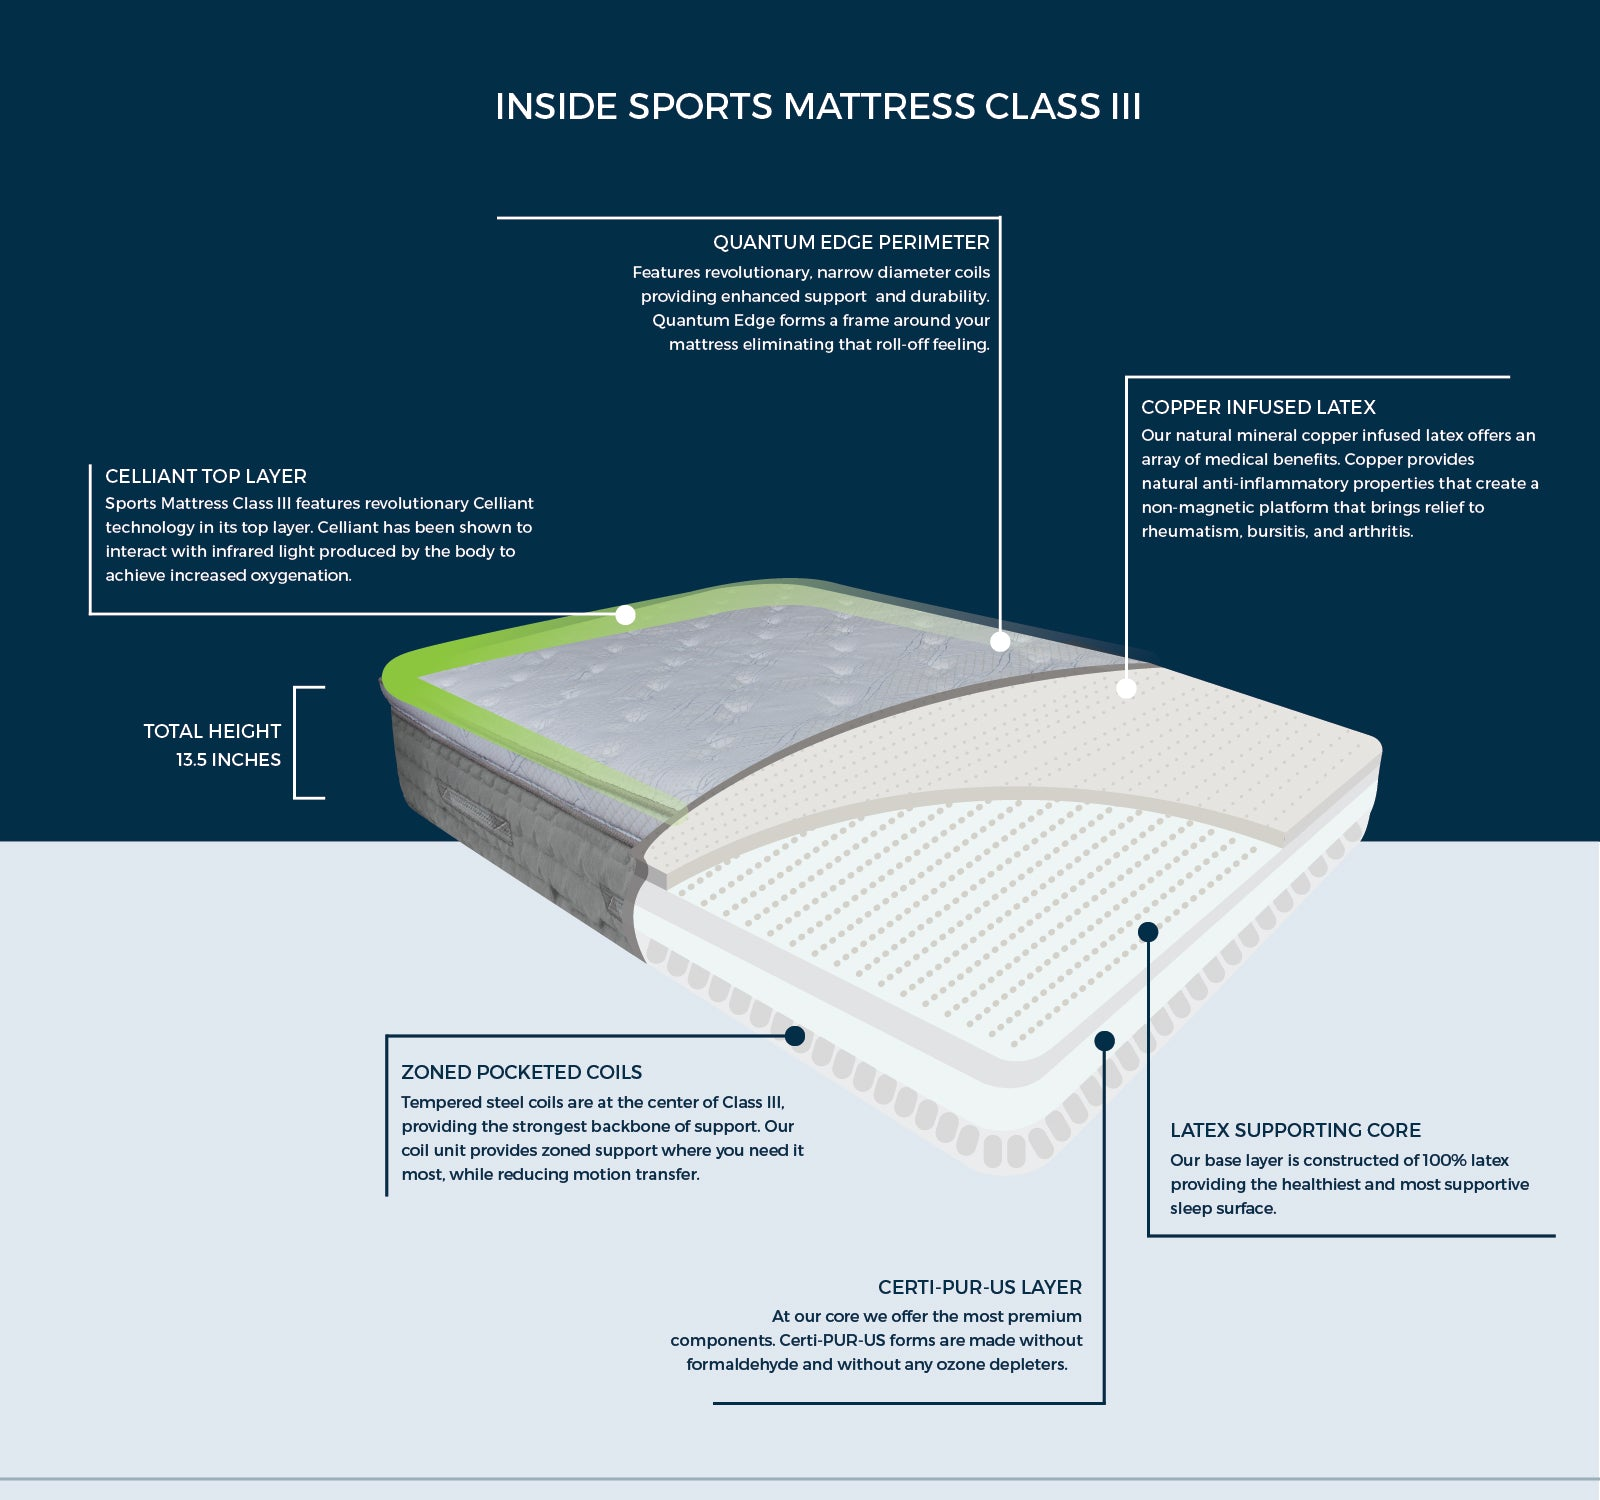 for west hard back firm mattress on from hampstead pain chiropractor recommendations chiropractic recommended mattresses